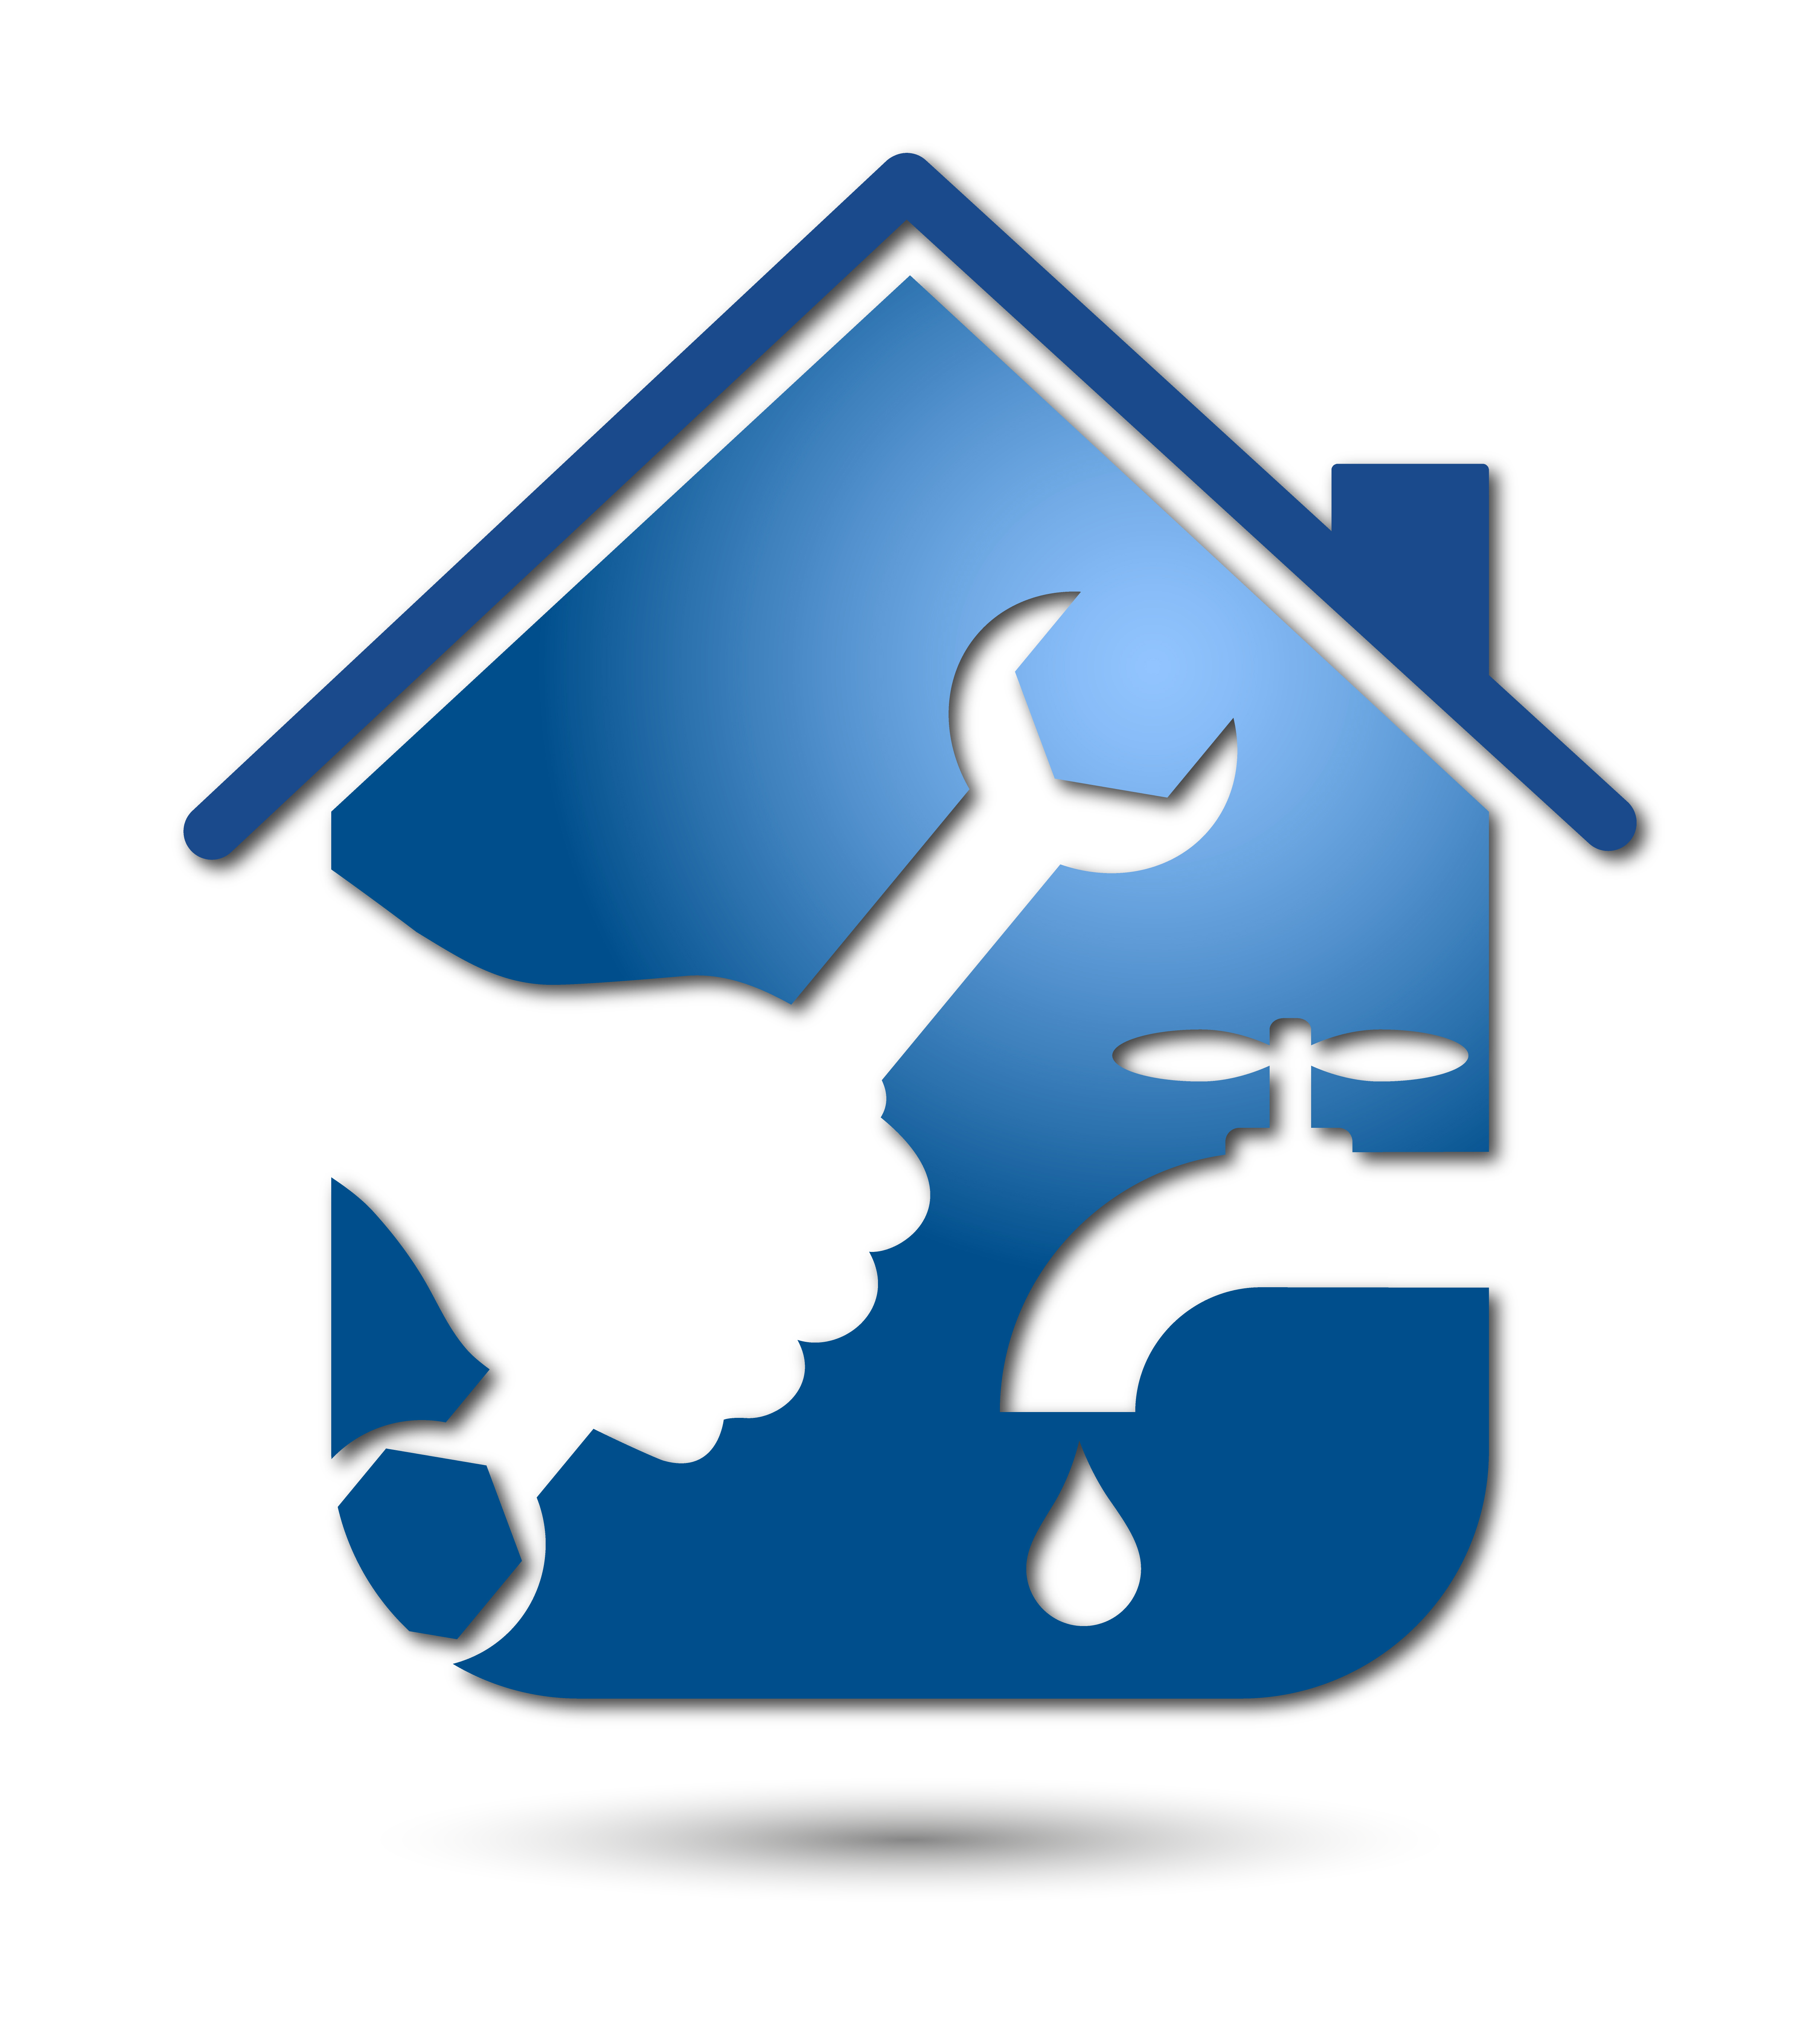 Free Plumber Cliparts, Download Free Clip Art, Free Clip Art.